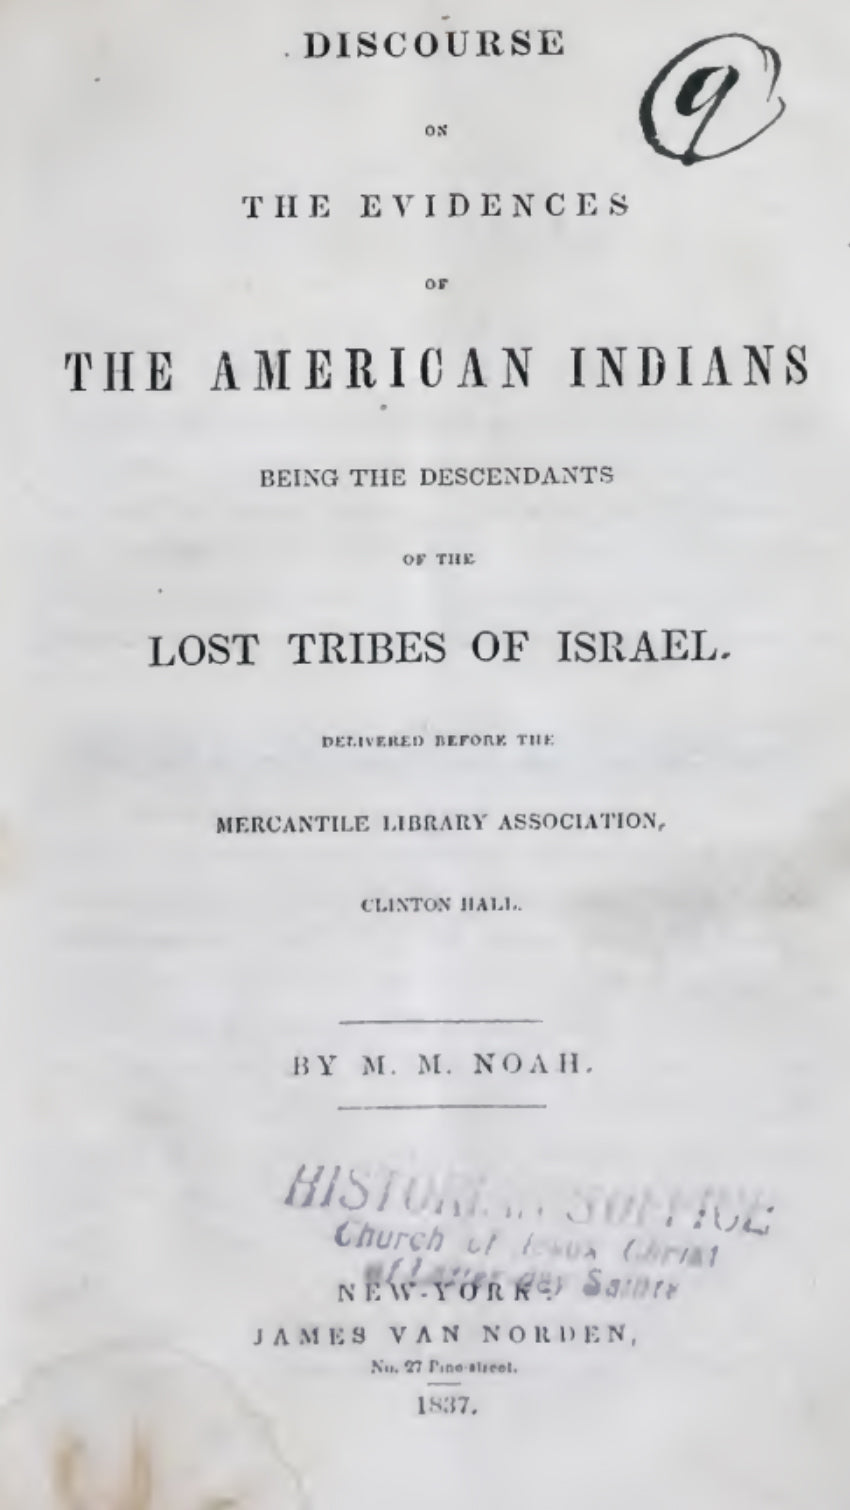 1837 Discourse on the evidences of the American Indians being the descendants of the Lost Tribes of Israel